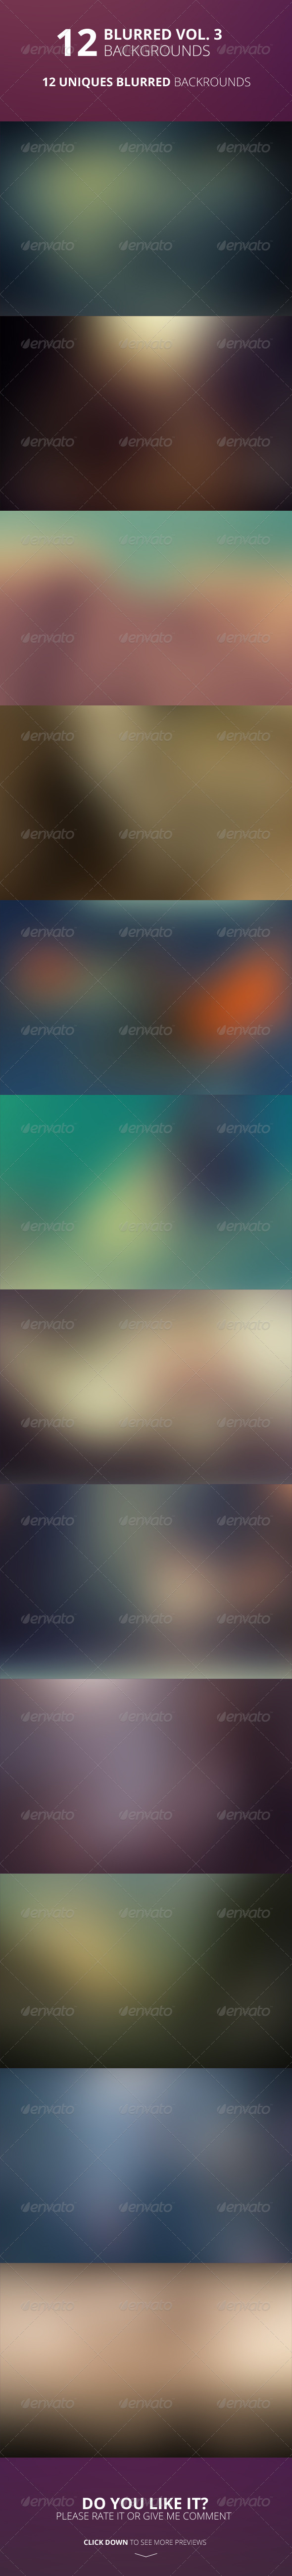 GraphicRiver 12 Blurred Backgrounds Vol 3 7627346